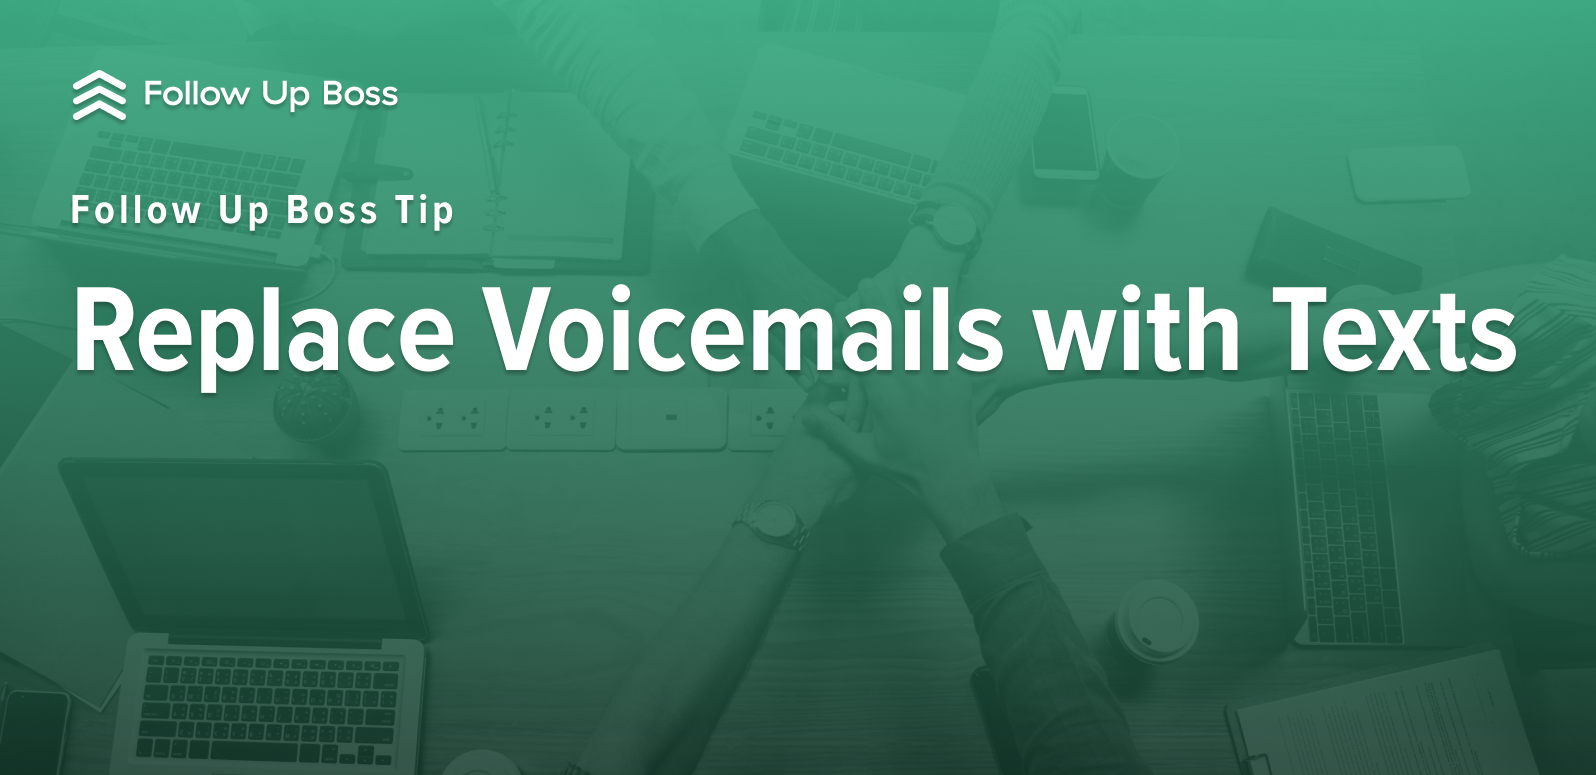 Follow Up Boss Tip: Replace Voicemails with Texts